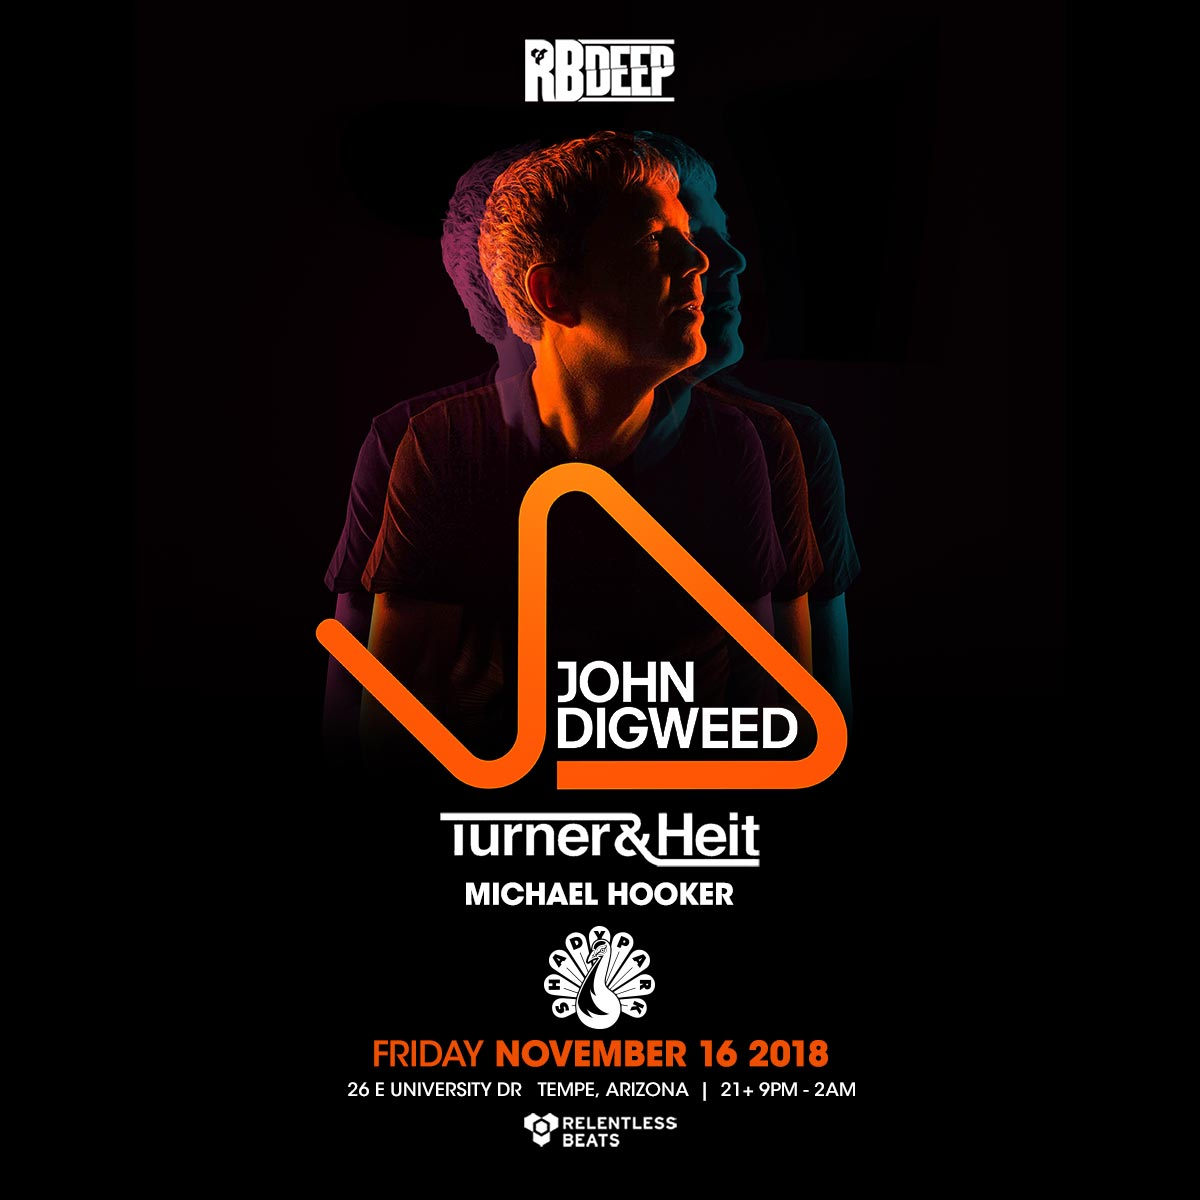 Flyer for John Digweed